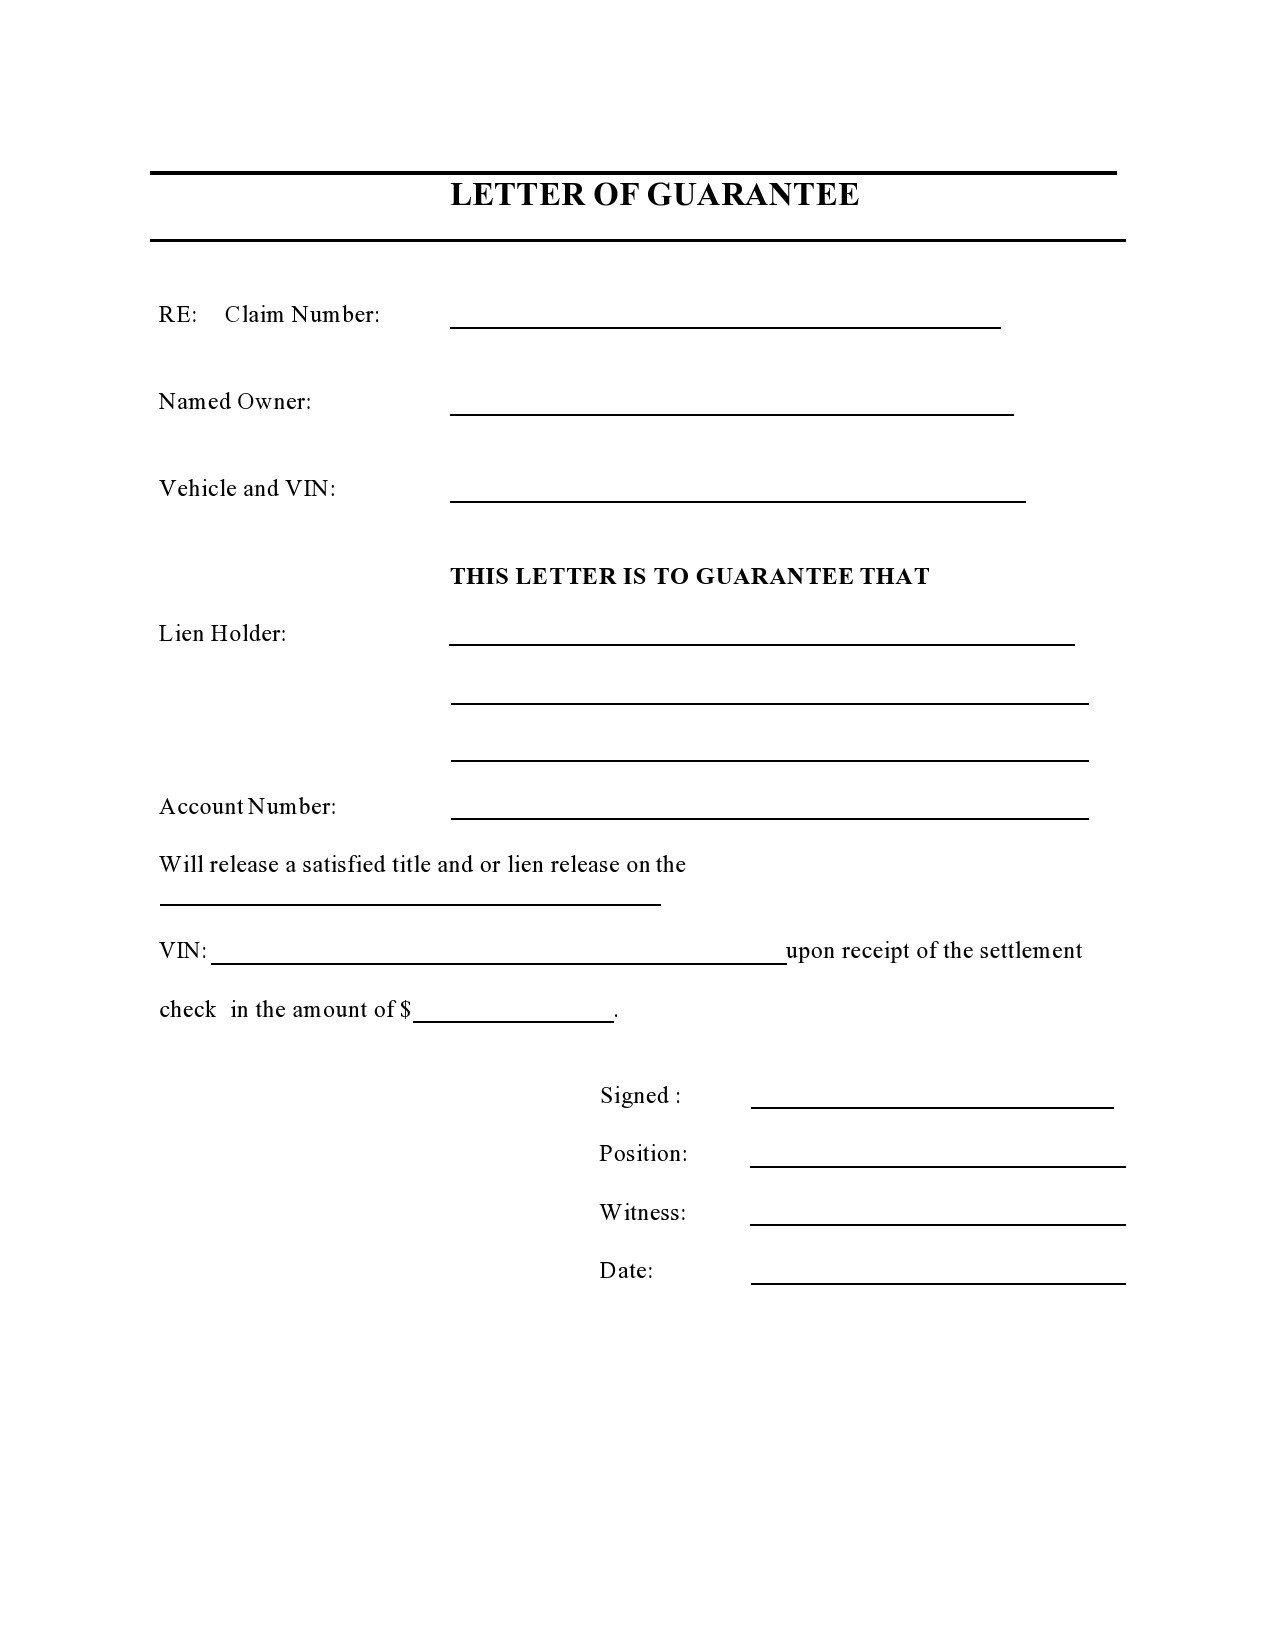 Free letter of guarantee 19